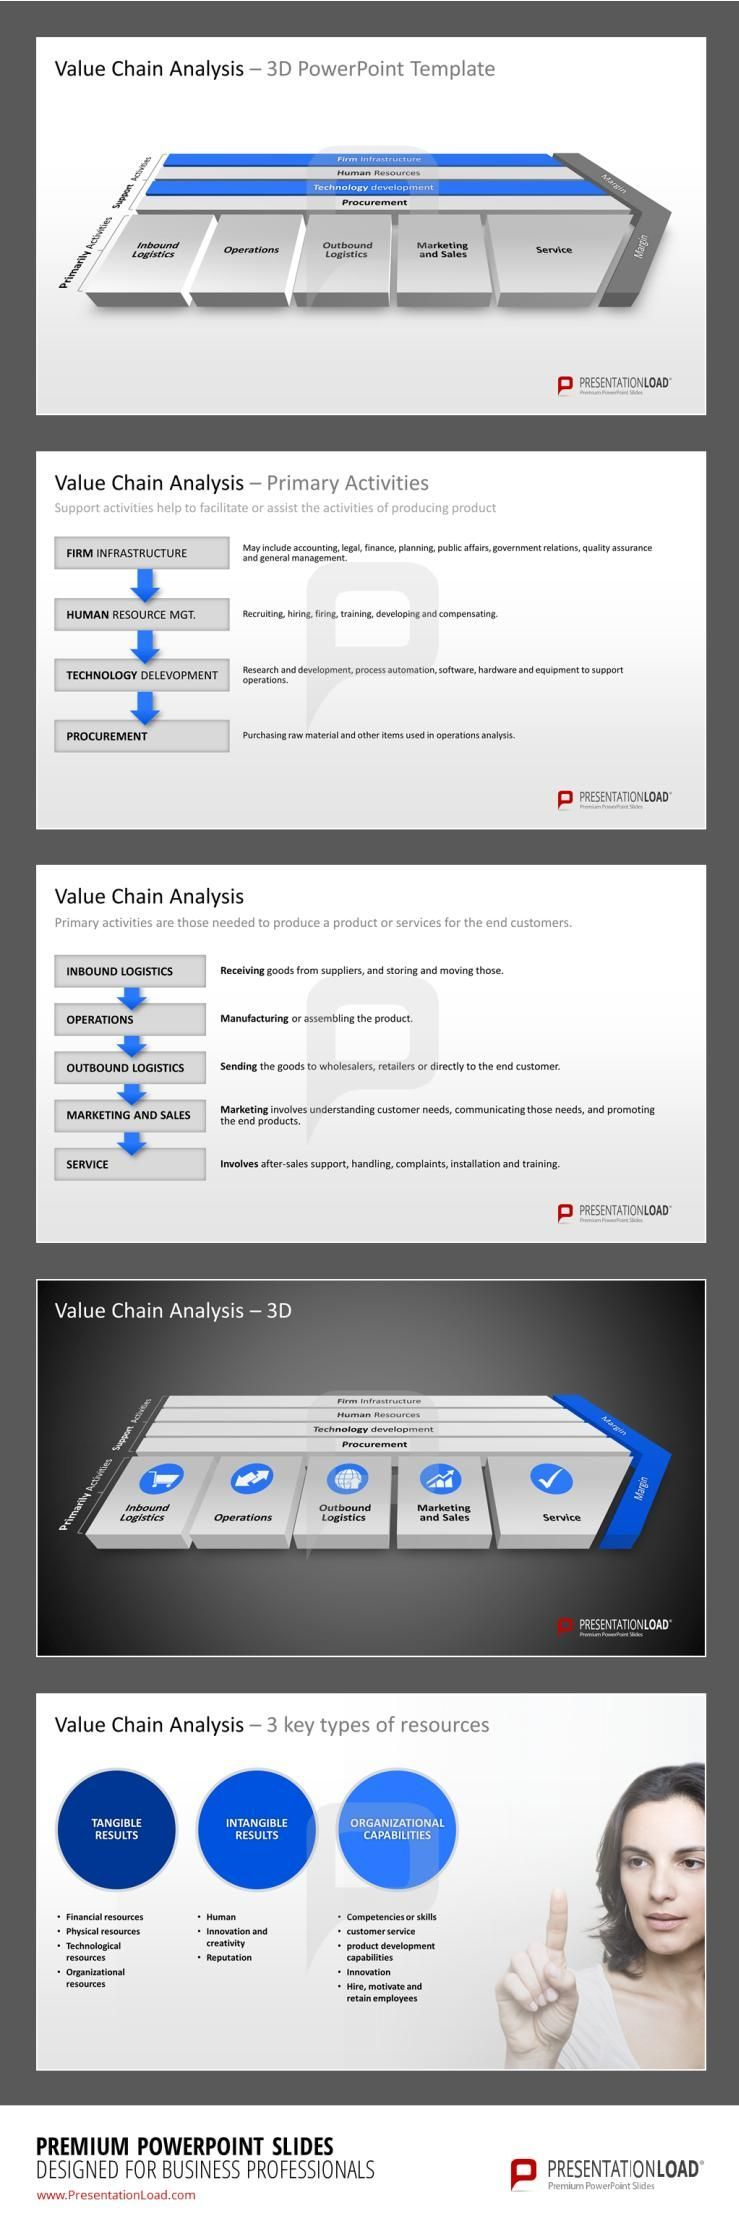 PowerPoint Templates for Value Chain Analysis. Management PPT slides ...